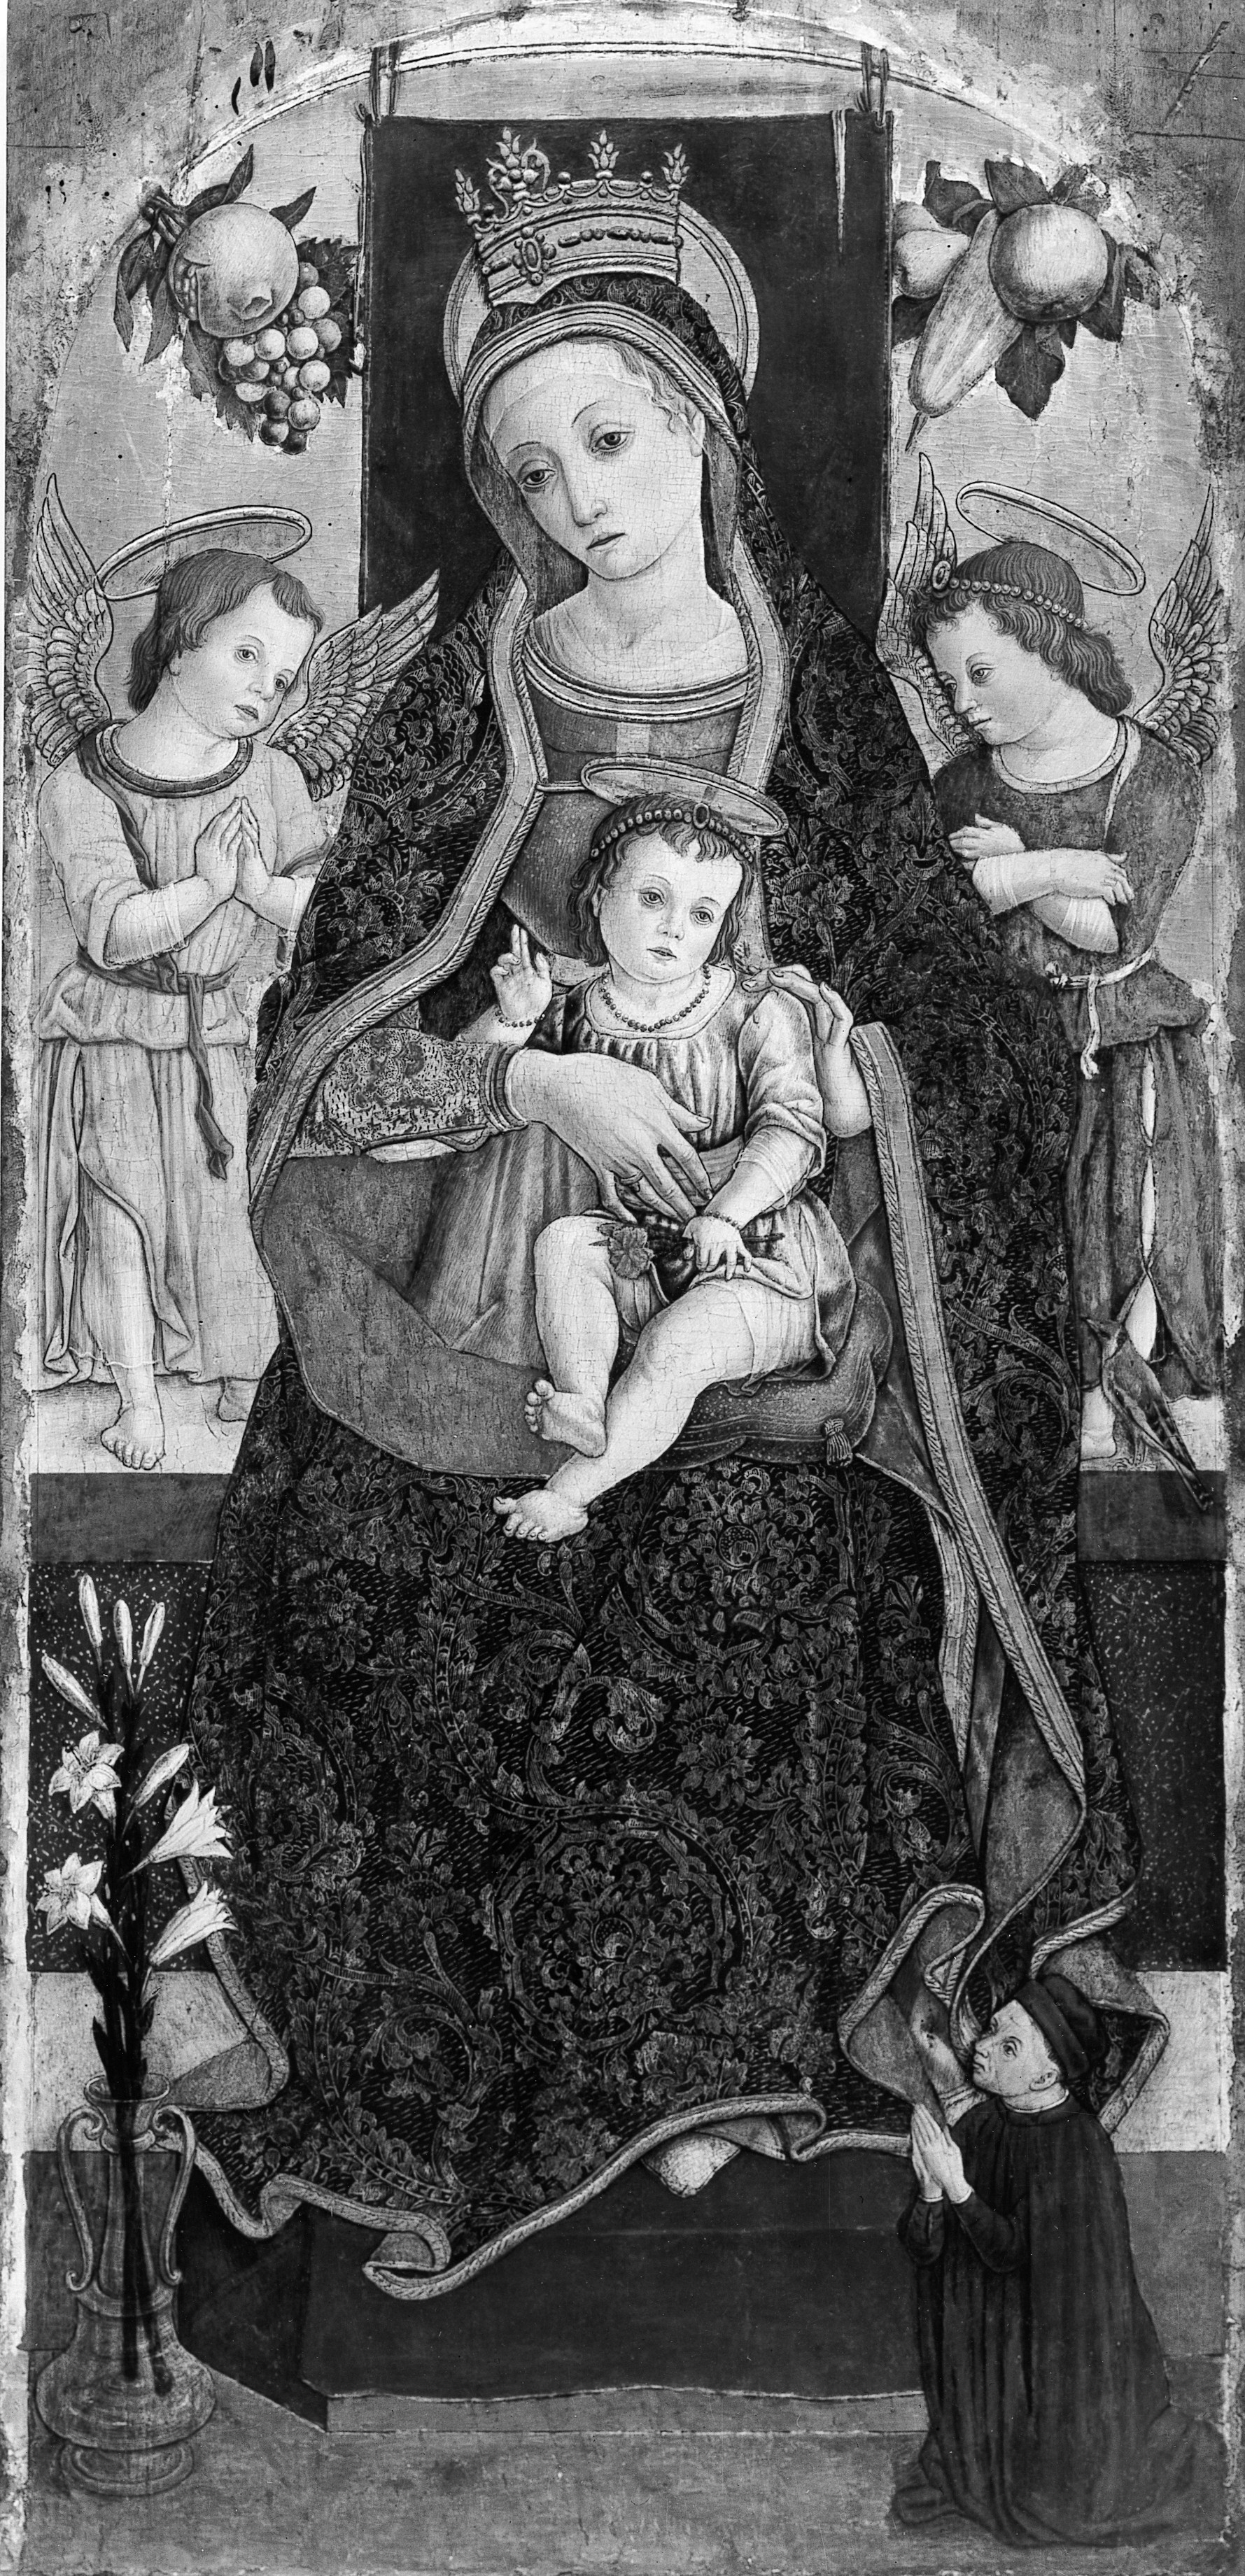 1481 Crivelli possibly Ludovico Vinci, a noble of the town of Fermo MET